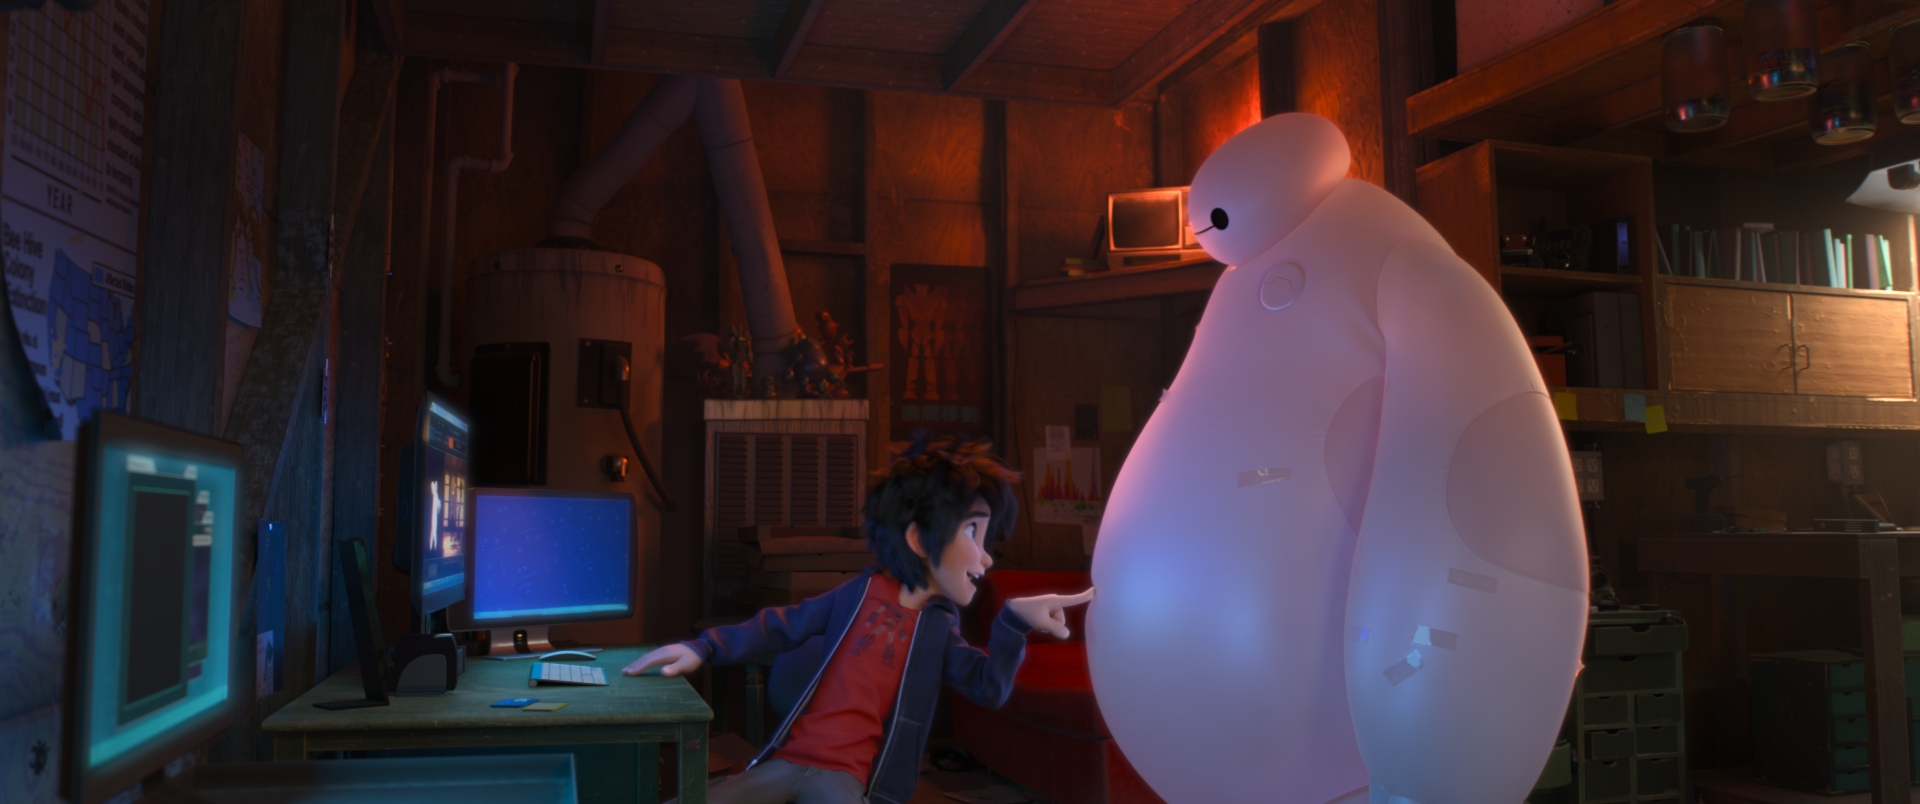 """BIG HERO 6"" Pictured (L-R): Hiro, Baymax. ?2014 Disney. All Rights Reserved."